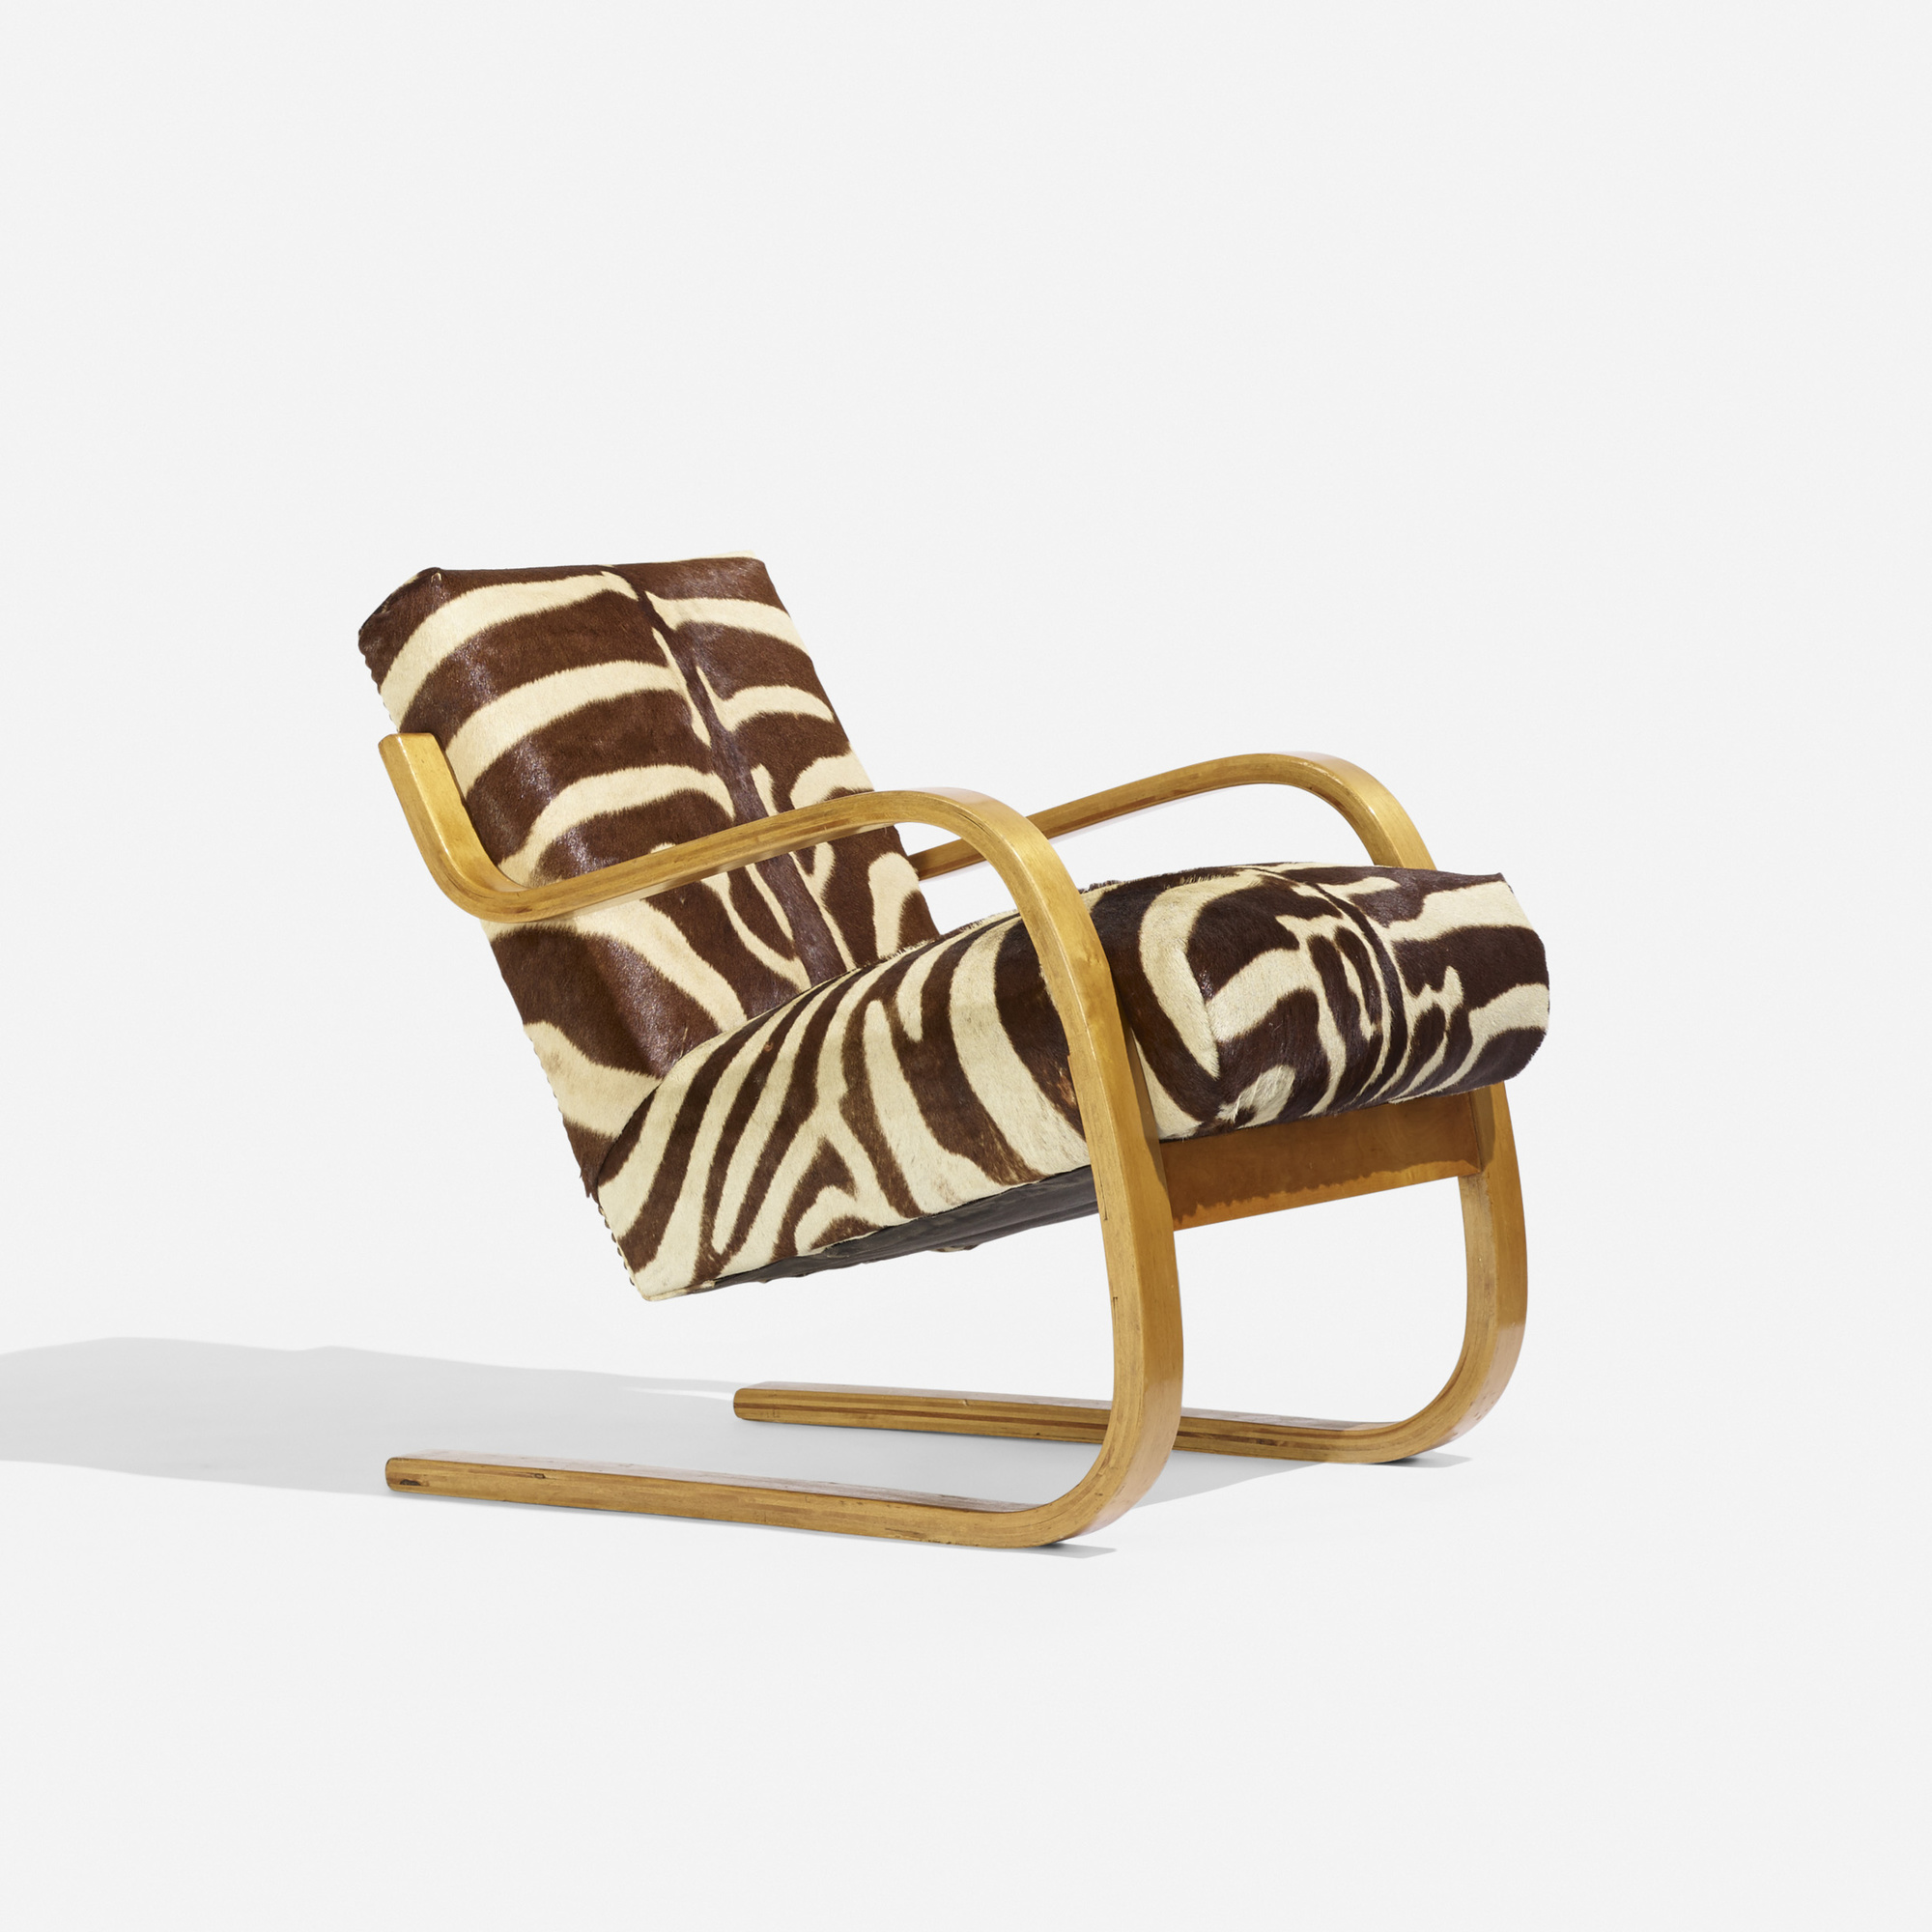 326: Alvar Aalto / Cantilever chair, model 34/402 (1 of 2)